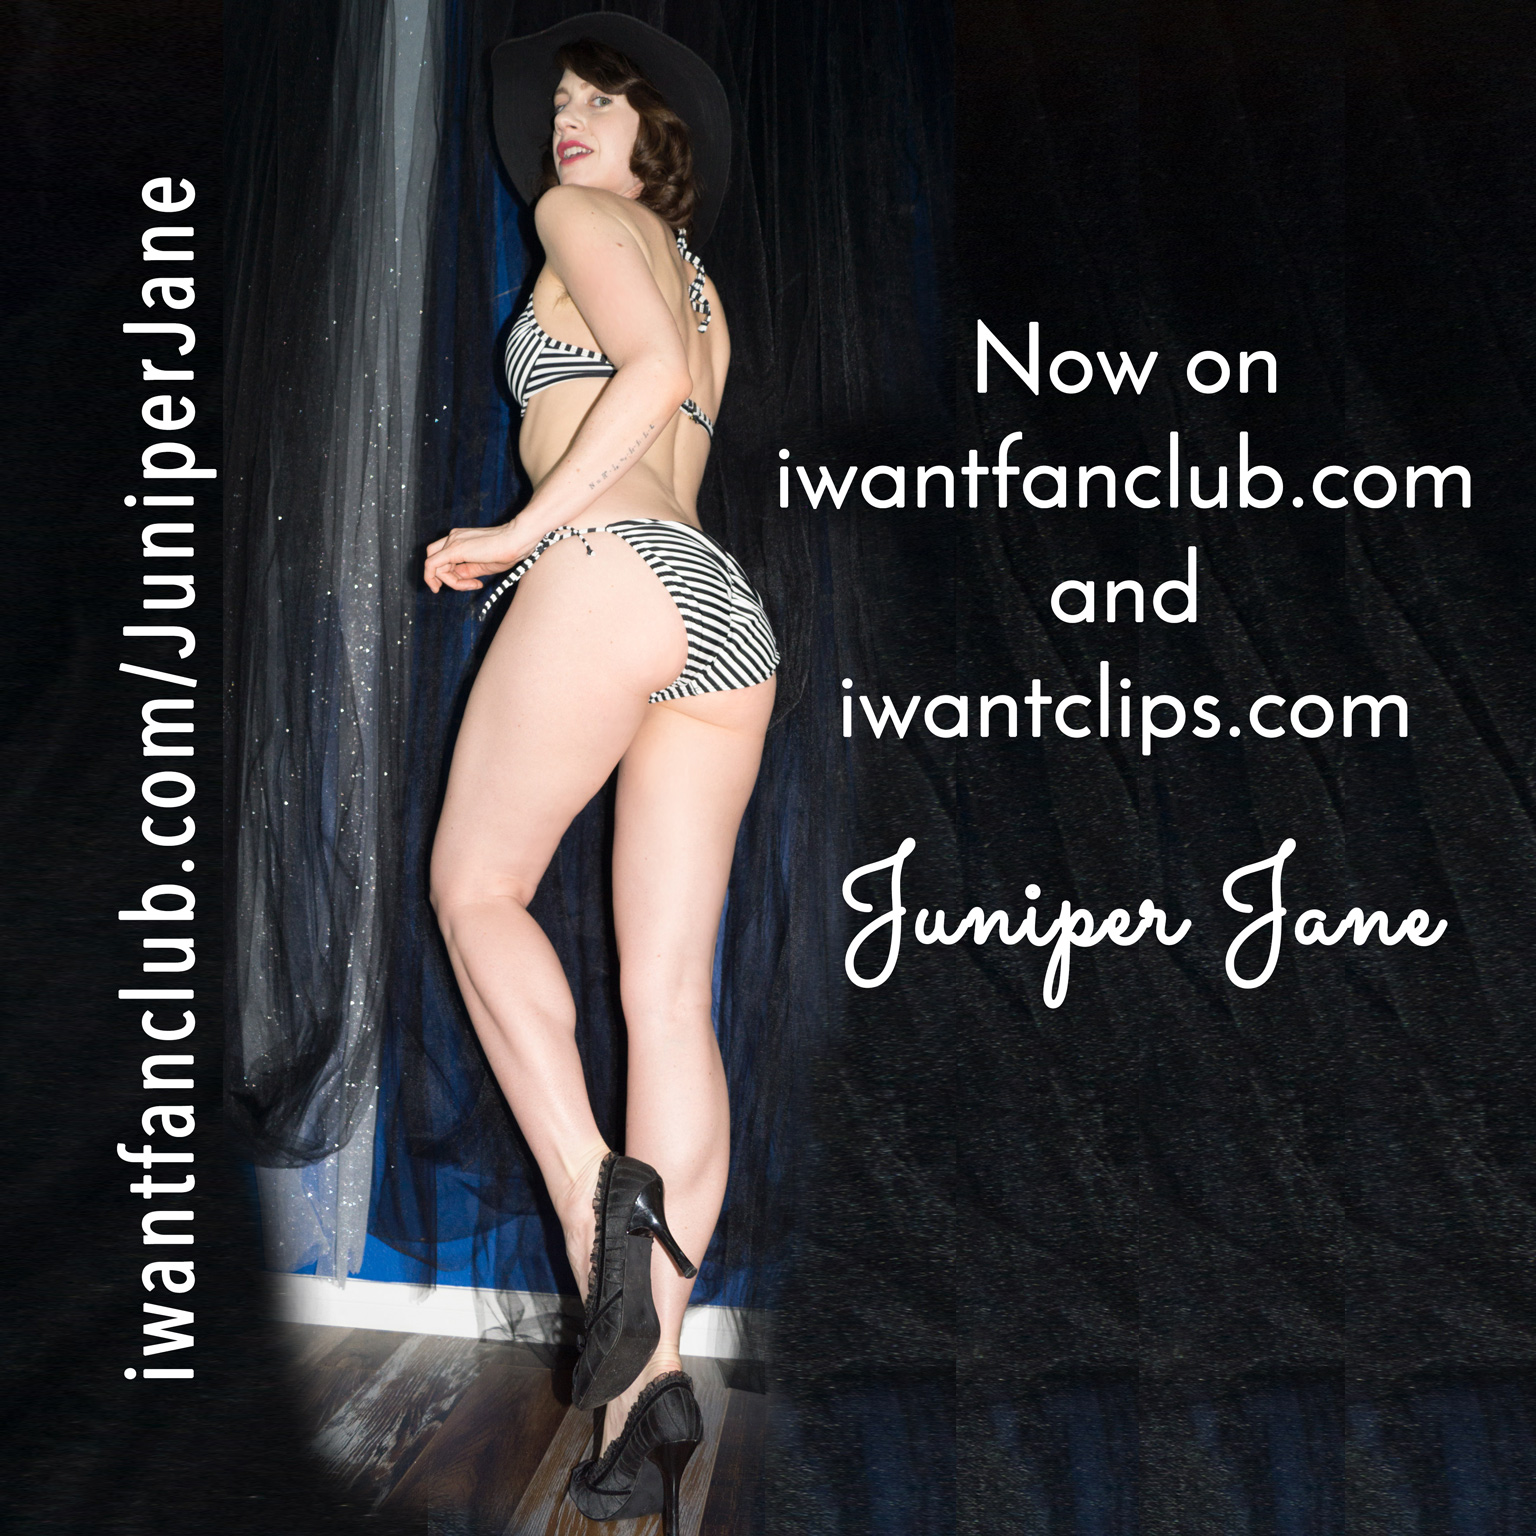 Juniper Jane is now on Iwantclips and iwantfanclub!